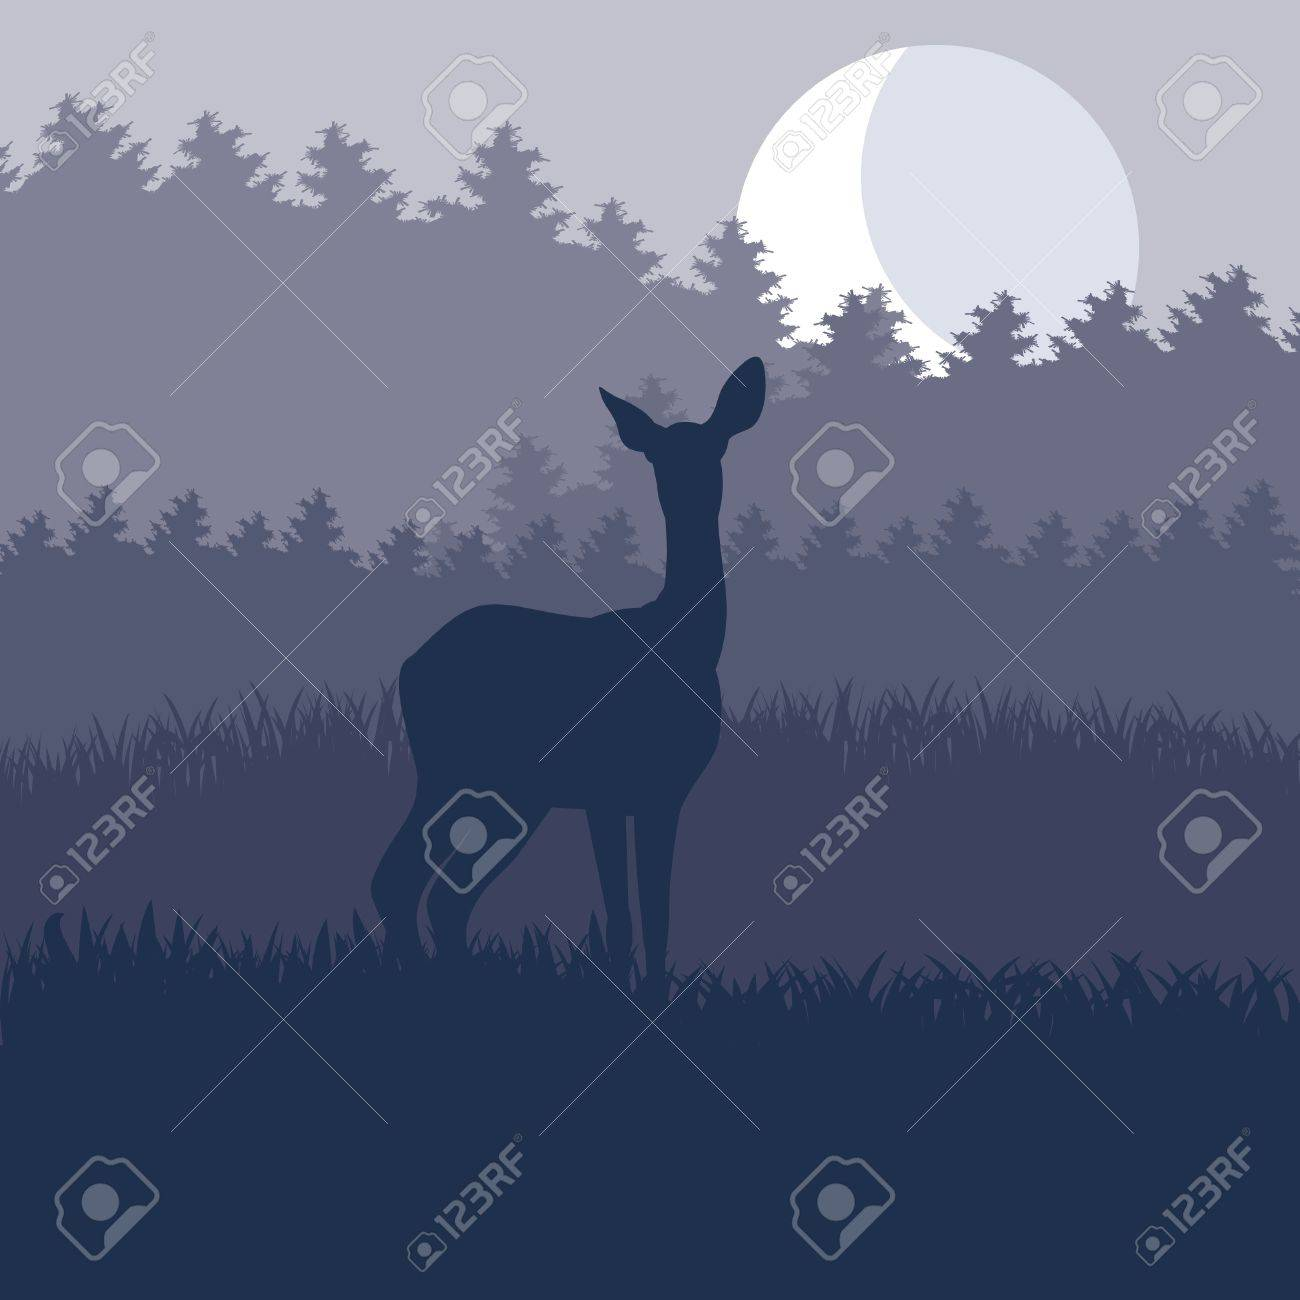 Rain deer family in wild night forest foliage illustration Stock Vector - 10578998